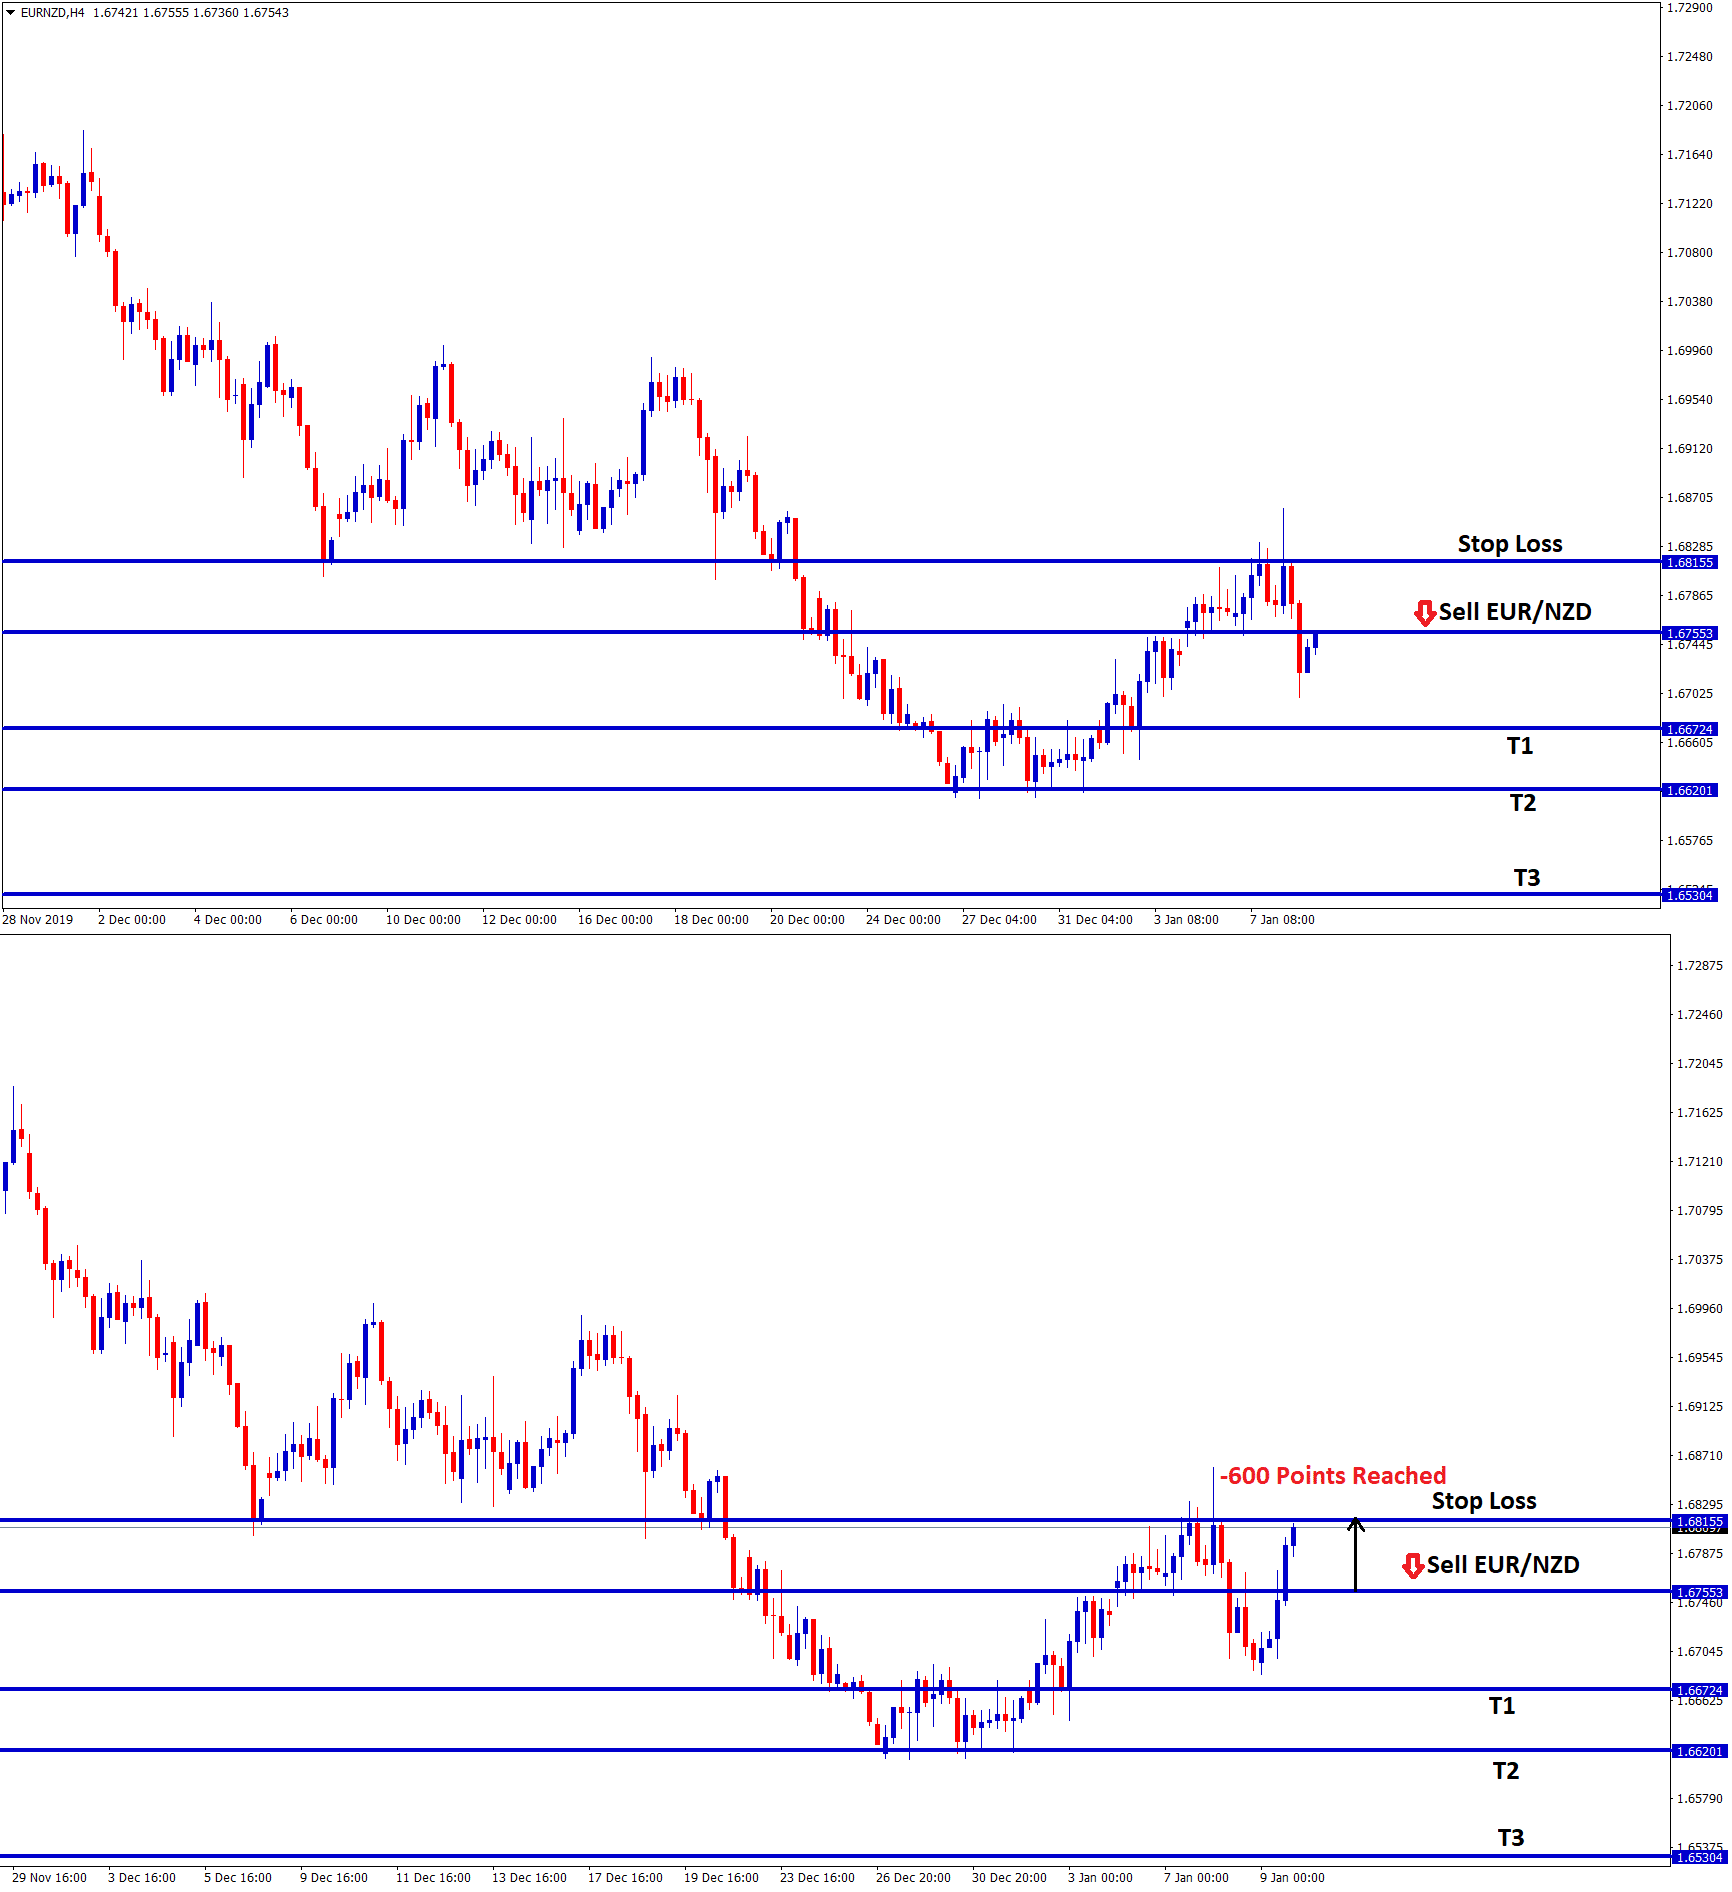 eur nzd sell signal hits the stop loss